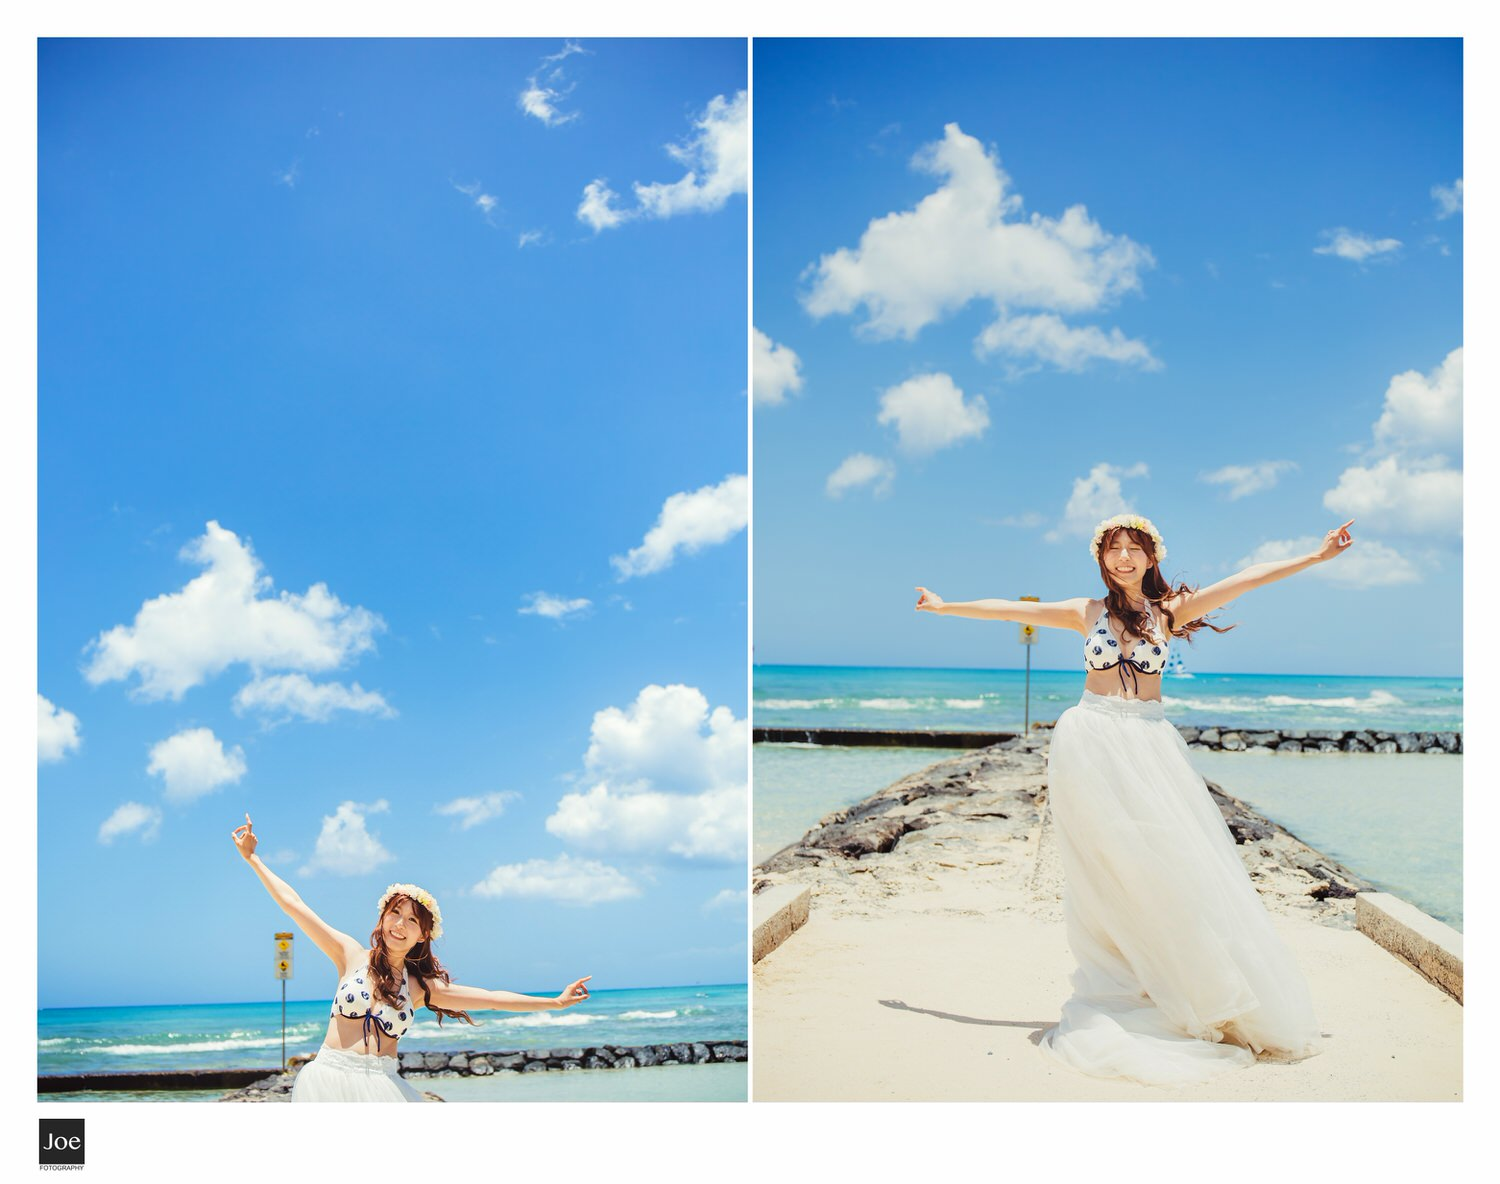 078-waikiki-beach-hawaii-pre-wedding-tiffany-tony-joe-fotography.jpg